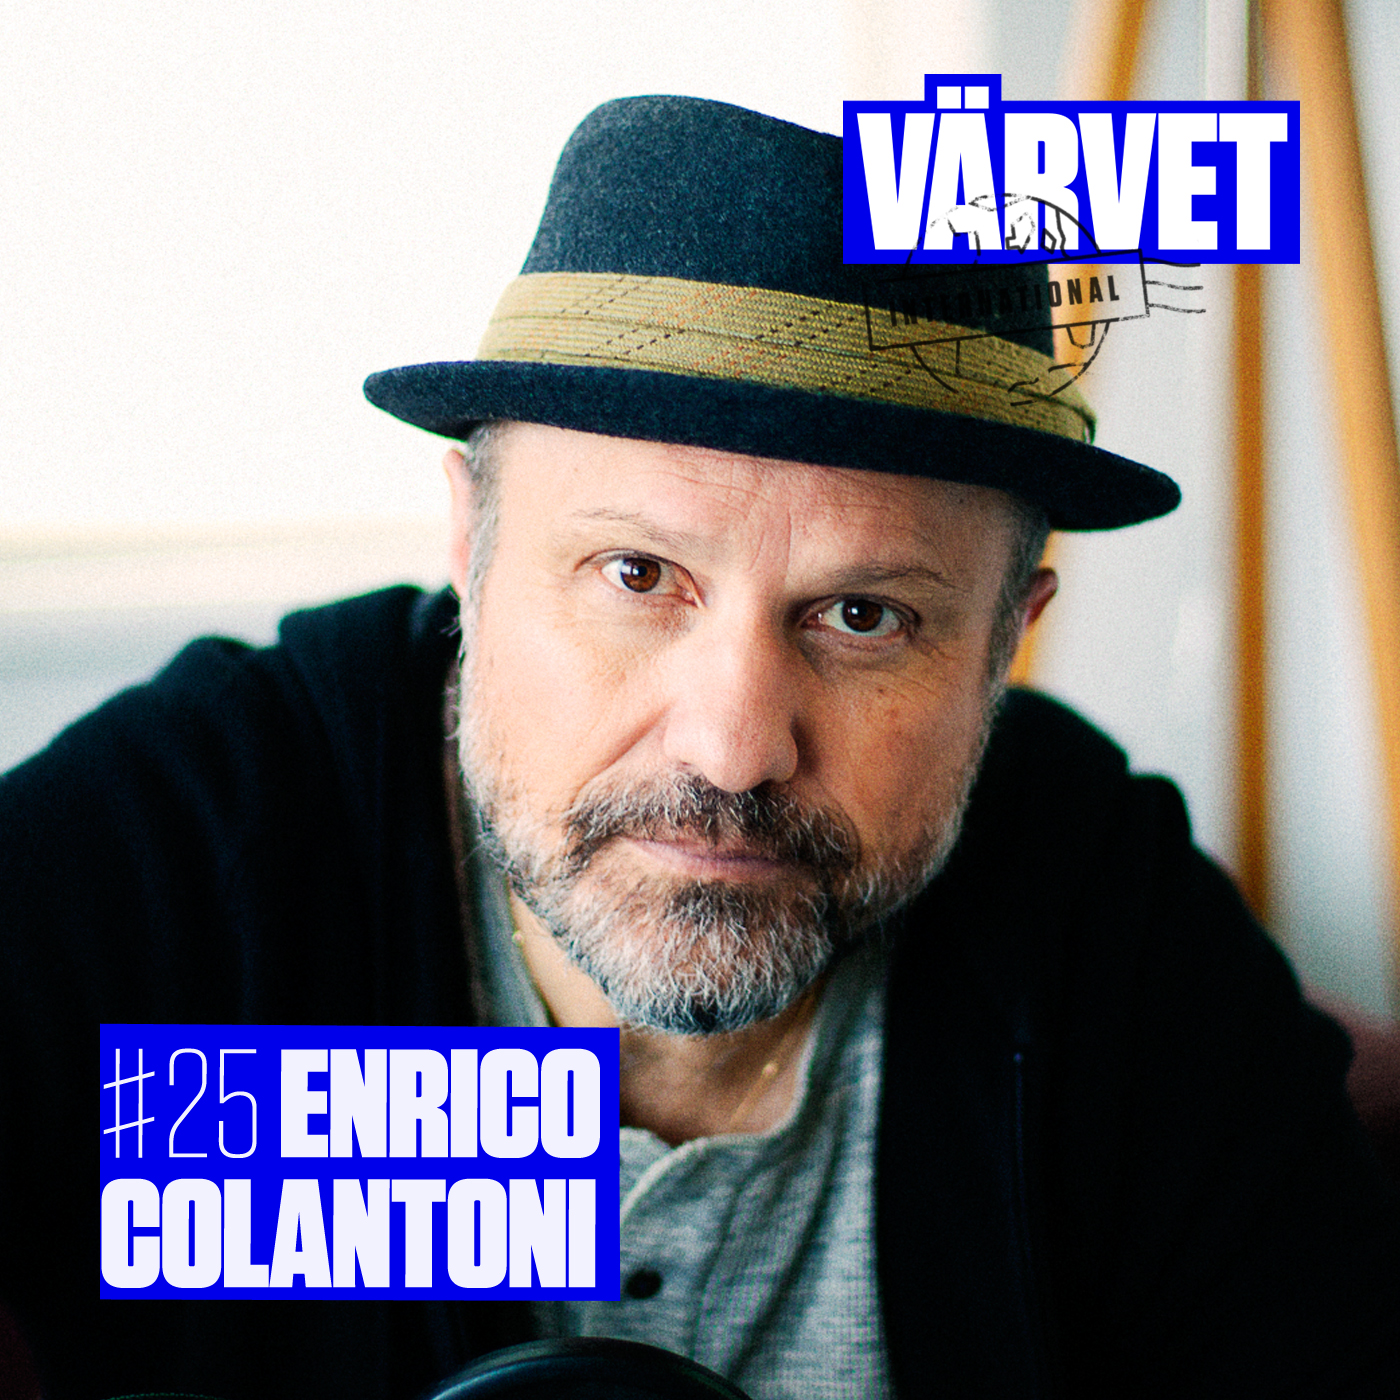 enrico colantoni synchronsprecherenrico colantoni wikipedia, enrico colantoni, enrico colantoni height, enrico colantoni imdb, enrico colantoni twitter, enrico colantoni flashpoint, enrico colantoni veronica mars, enrico colantoni net worth, enrico colantoni movies and tv shows, enrico colantoni wife, enrico colantoni leaving flashpoint, enrico colantoni married, enrico colantoni galaxy quest, enrico colantoni nancy snyder, enrico colantoni family, enrico colantoni synchronsprecher, enrico colantoni just shoot me, enrico colantoni bones, enrico colantoni married rosanna, enrico colantoni instagram